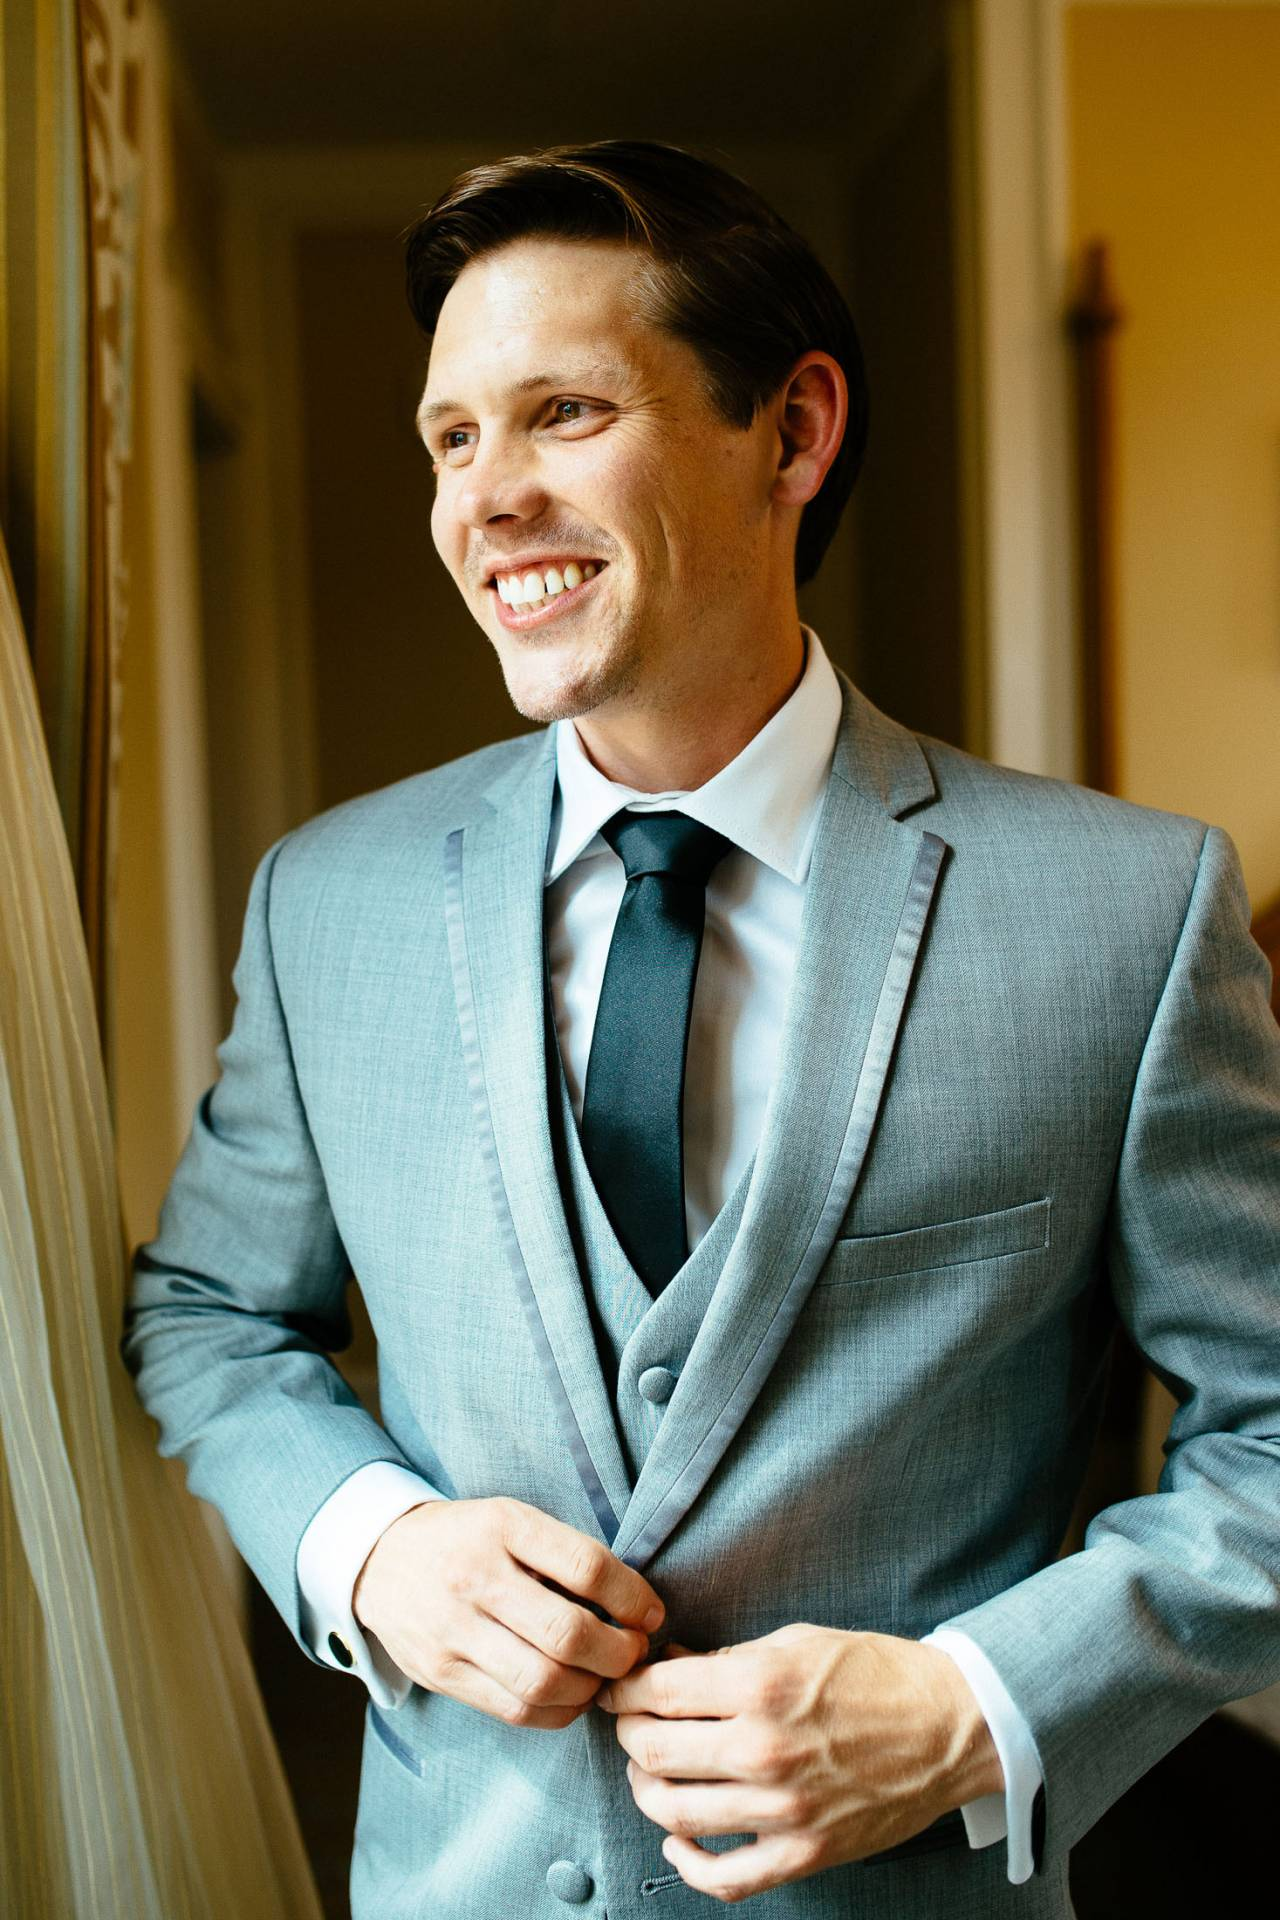 Groom in gray suit buttons his coat and smile on his wedding day.